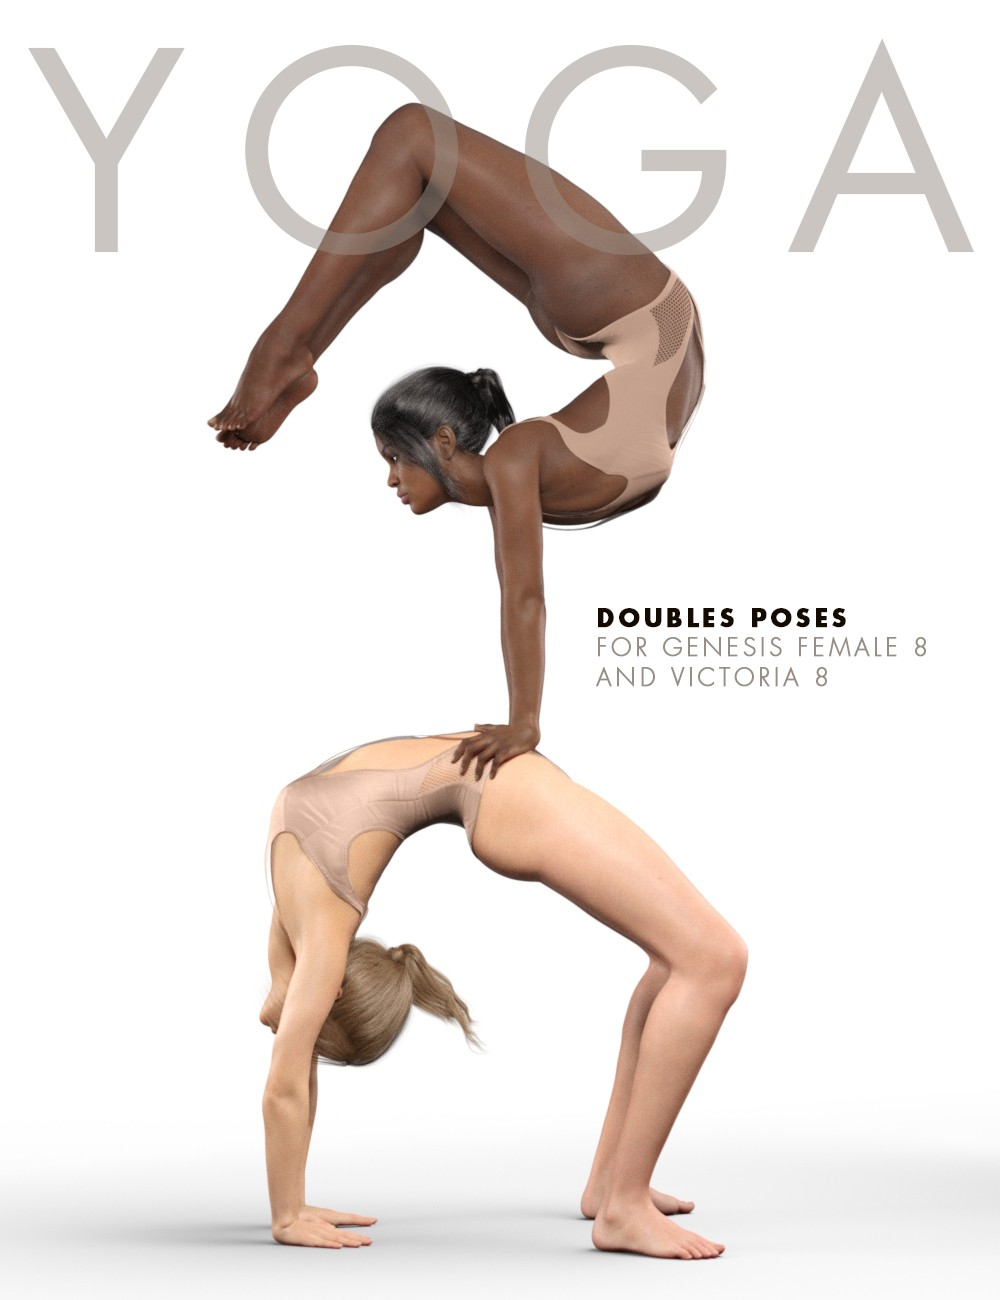 YOGA Doubles Poses for Genesis 8 Female(s) and Victoria 8_DAZ3D下载站